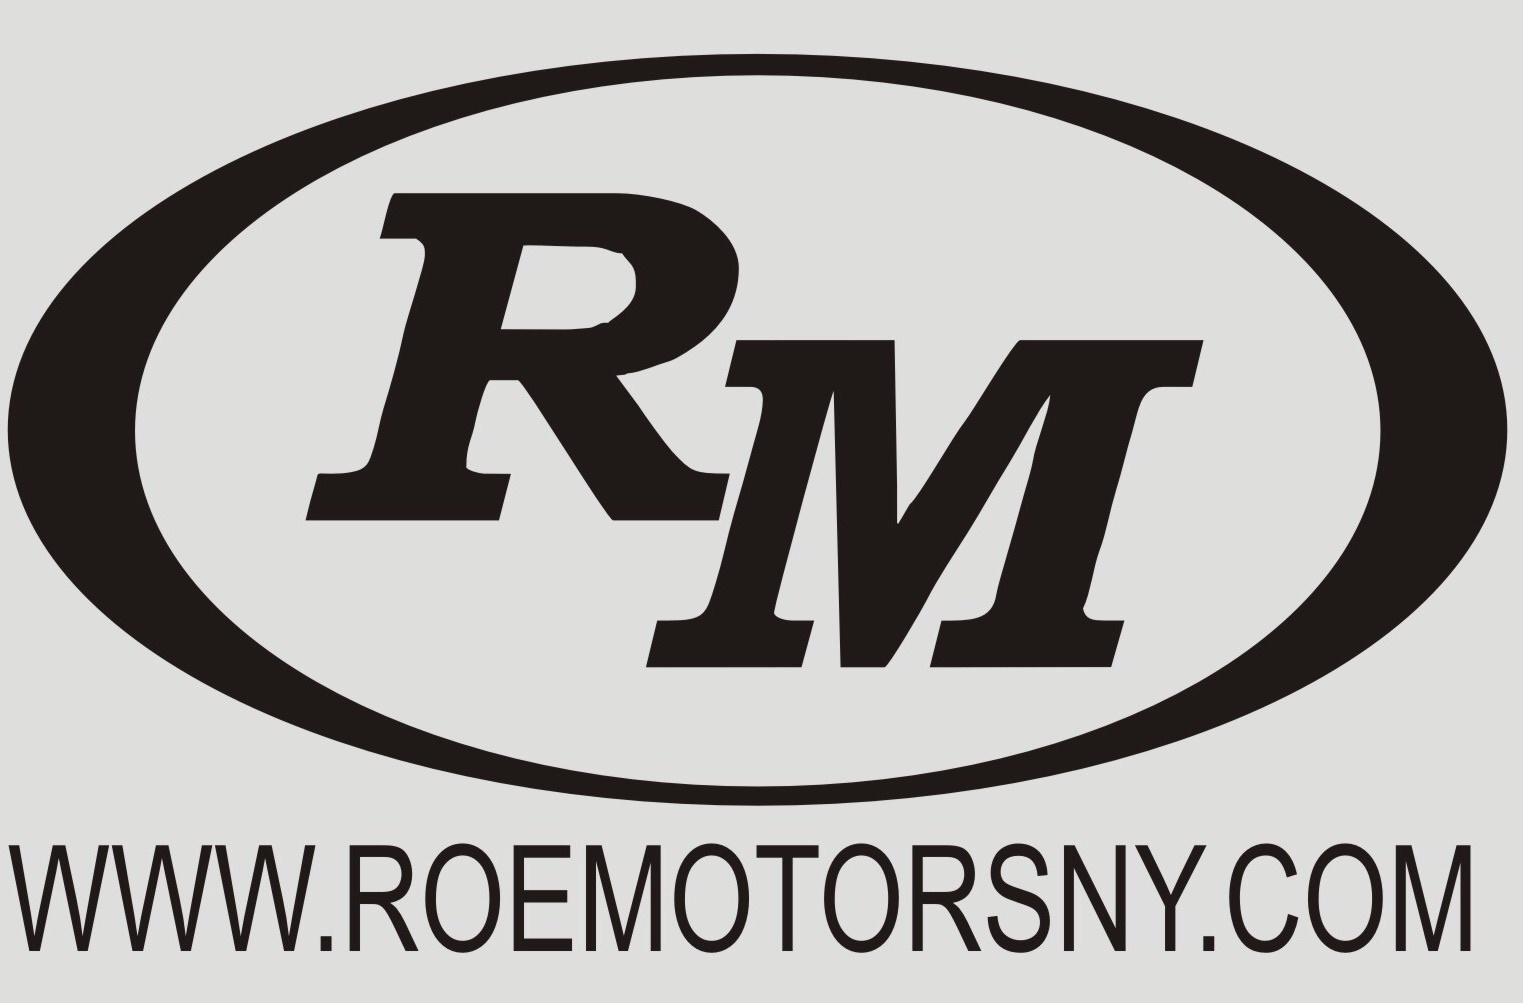 Roe Motors Ltd - Shirley, NY: Read Consumer reviews, Browse Used and New  Cars for Sale